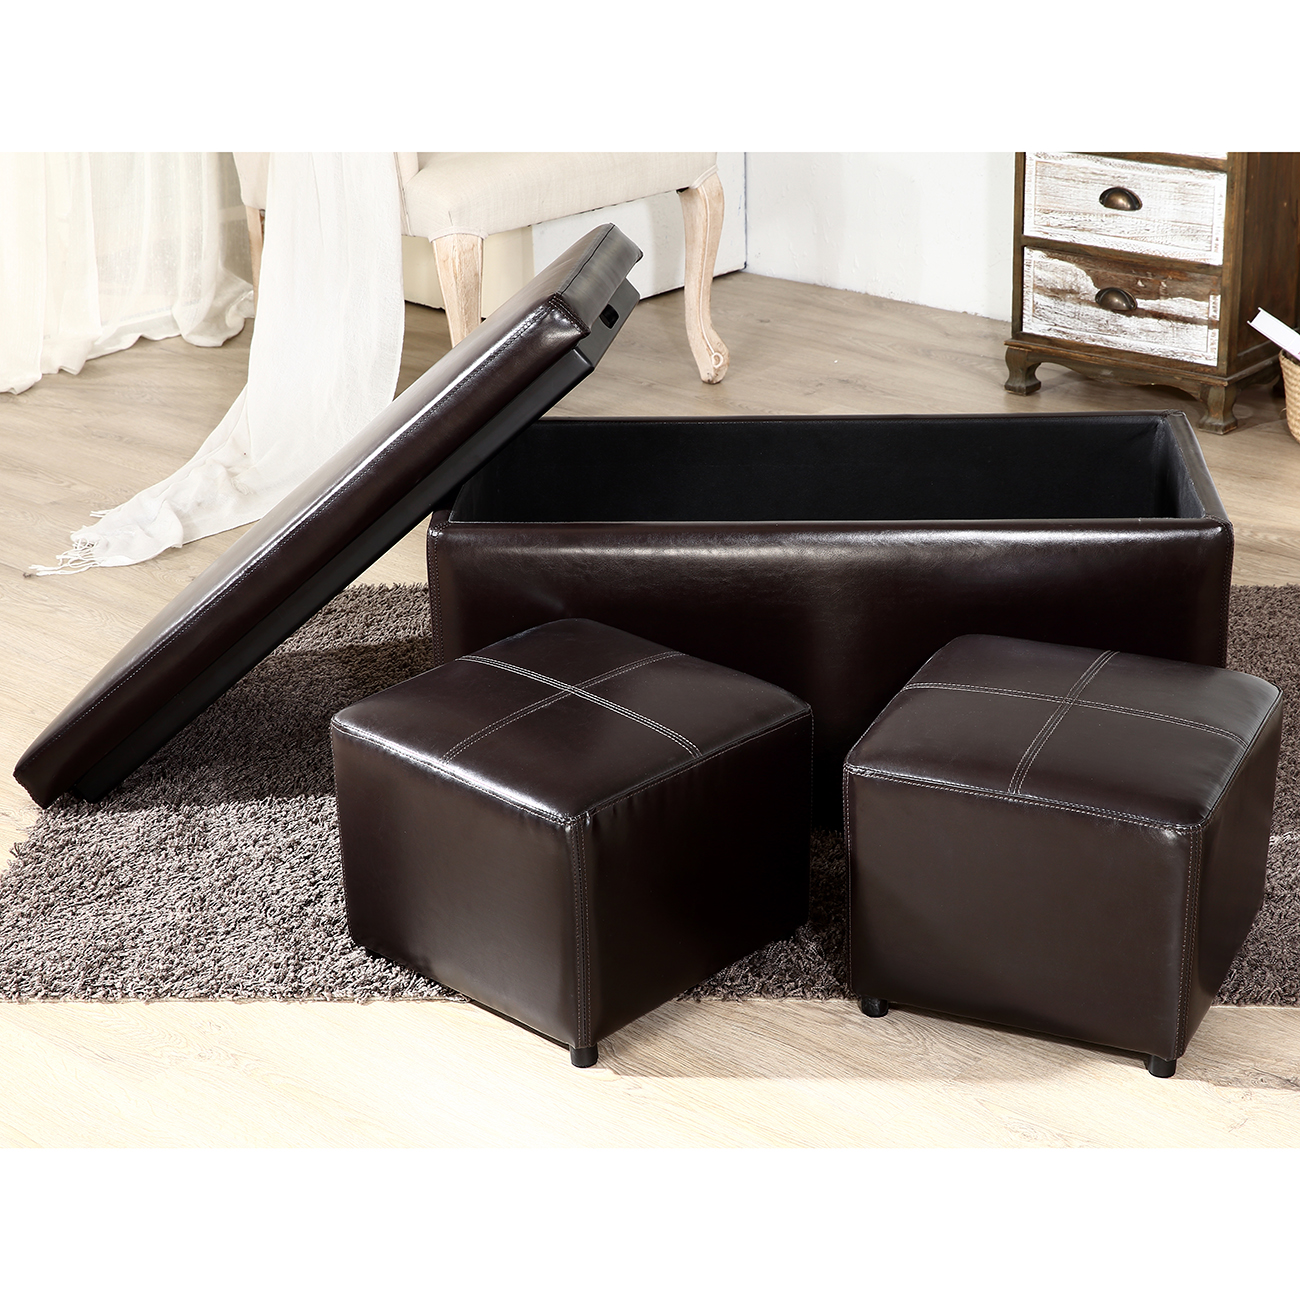 3pc contemporary brown black cream leather tray top nested storage ottoman bench. Black Bedroom Furniture Sets. Home Design Ideas